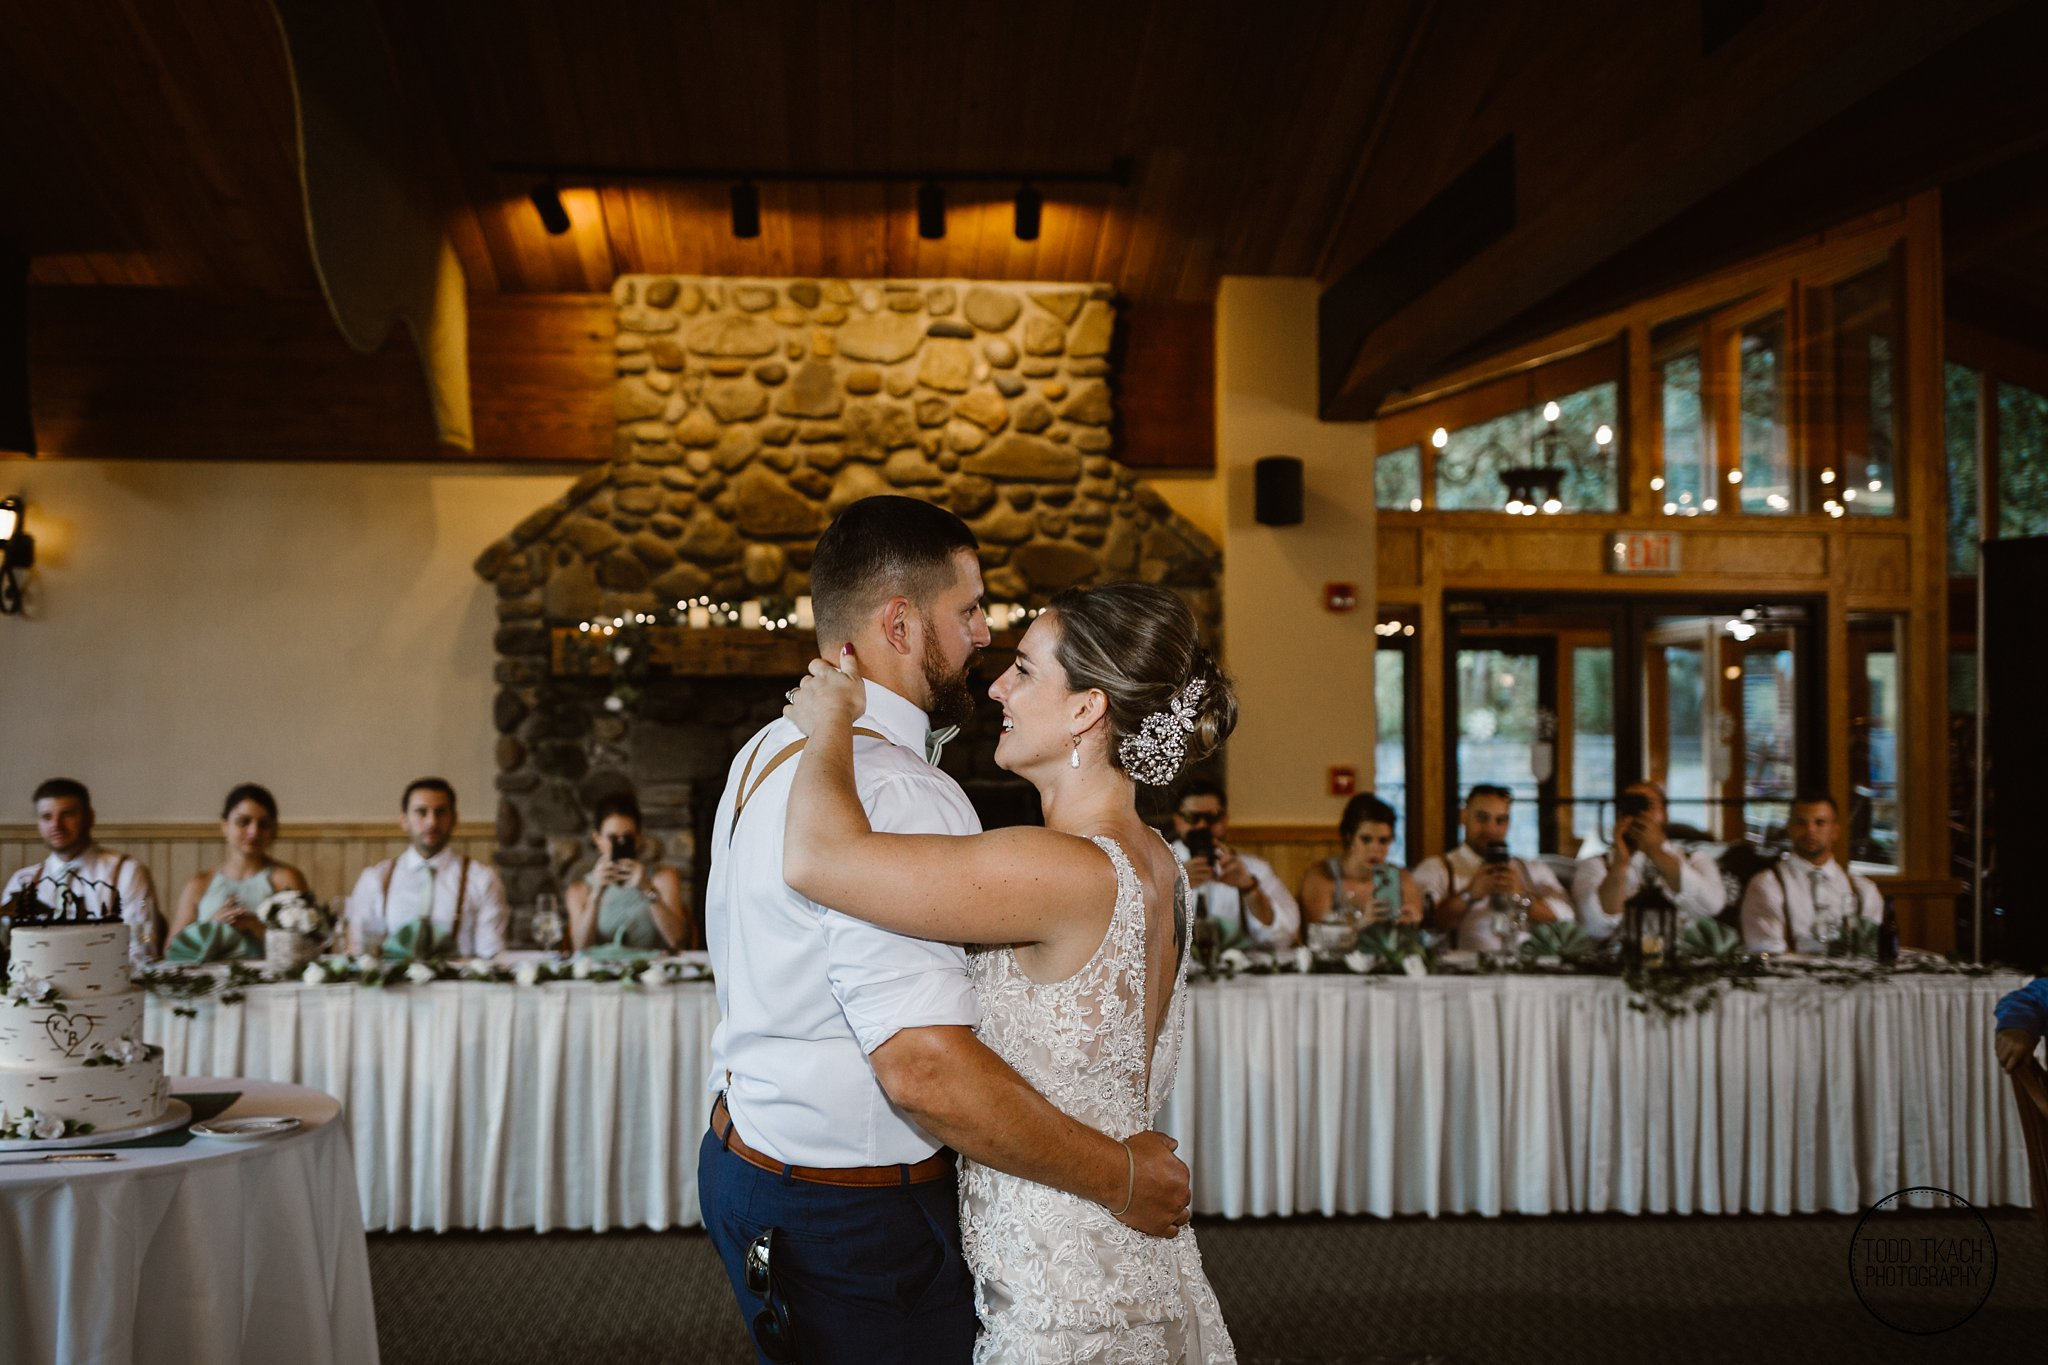 Kim & Brandon's First Dance